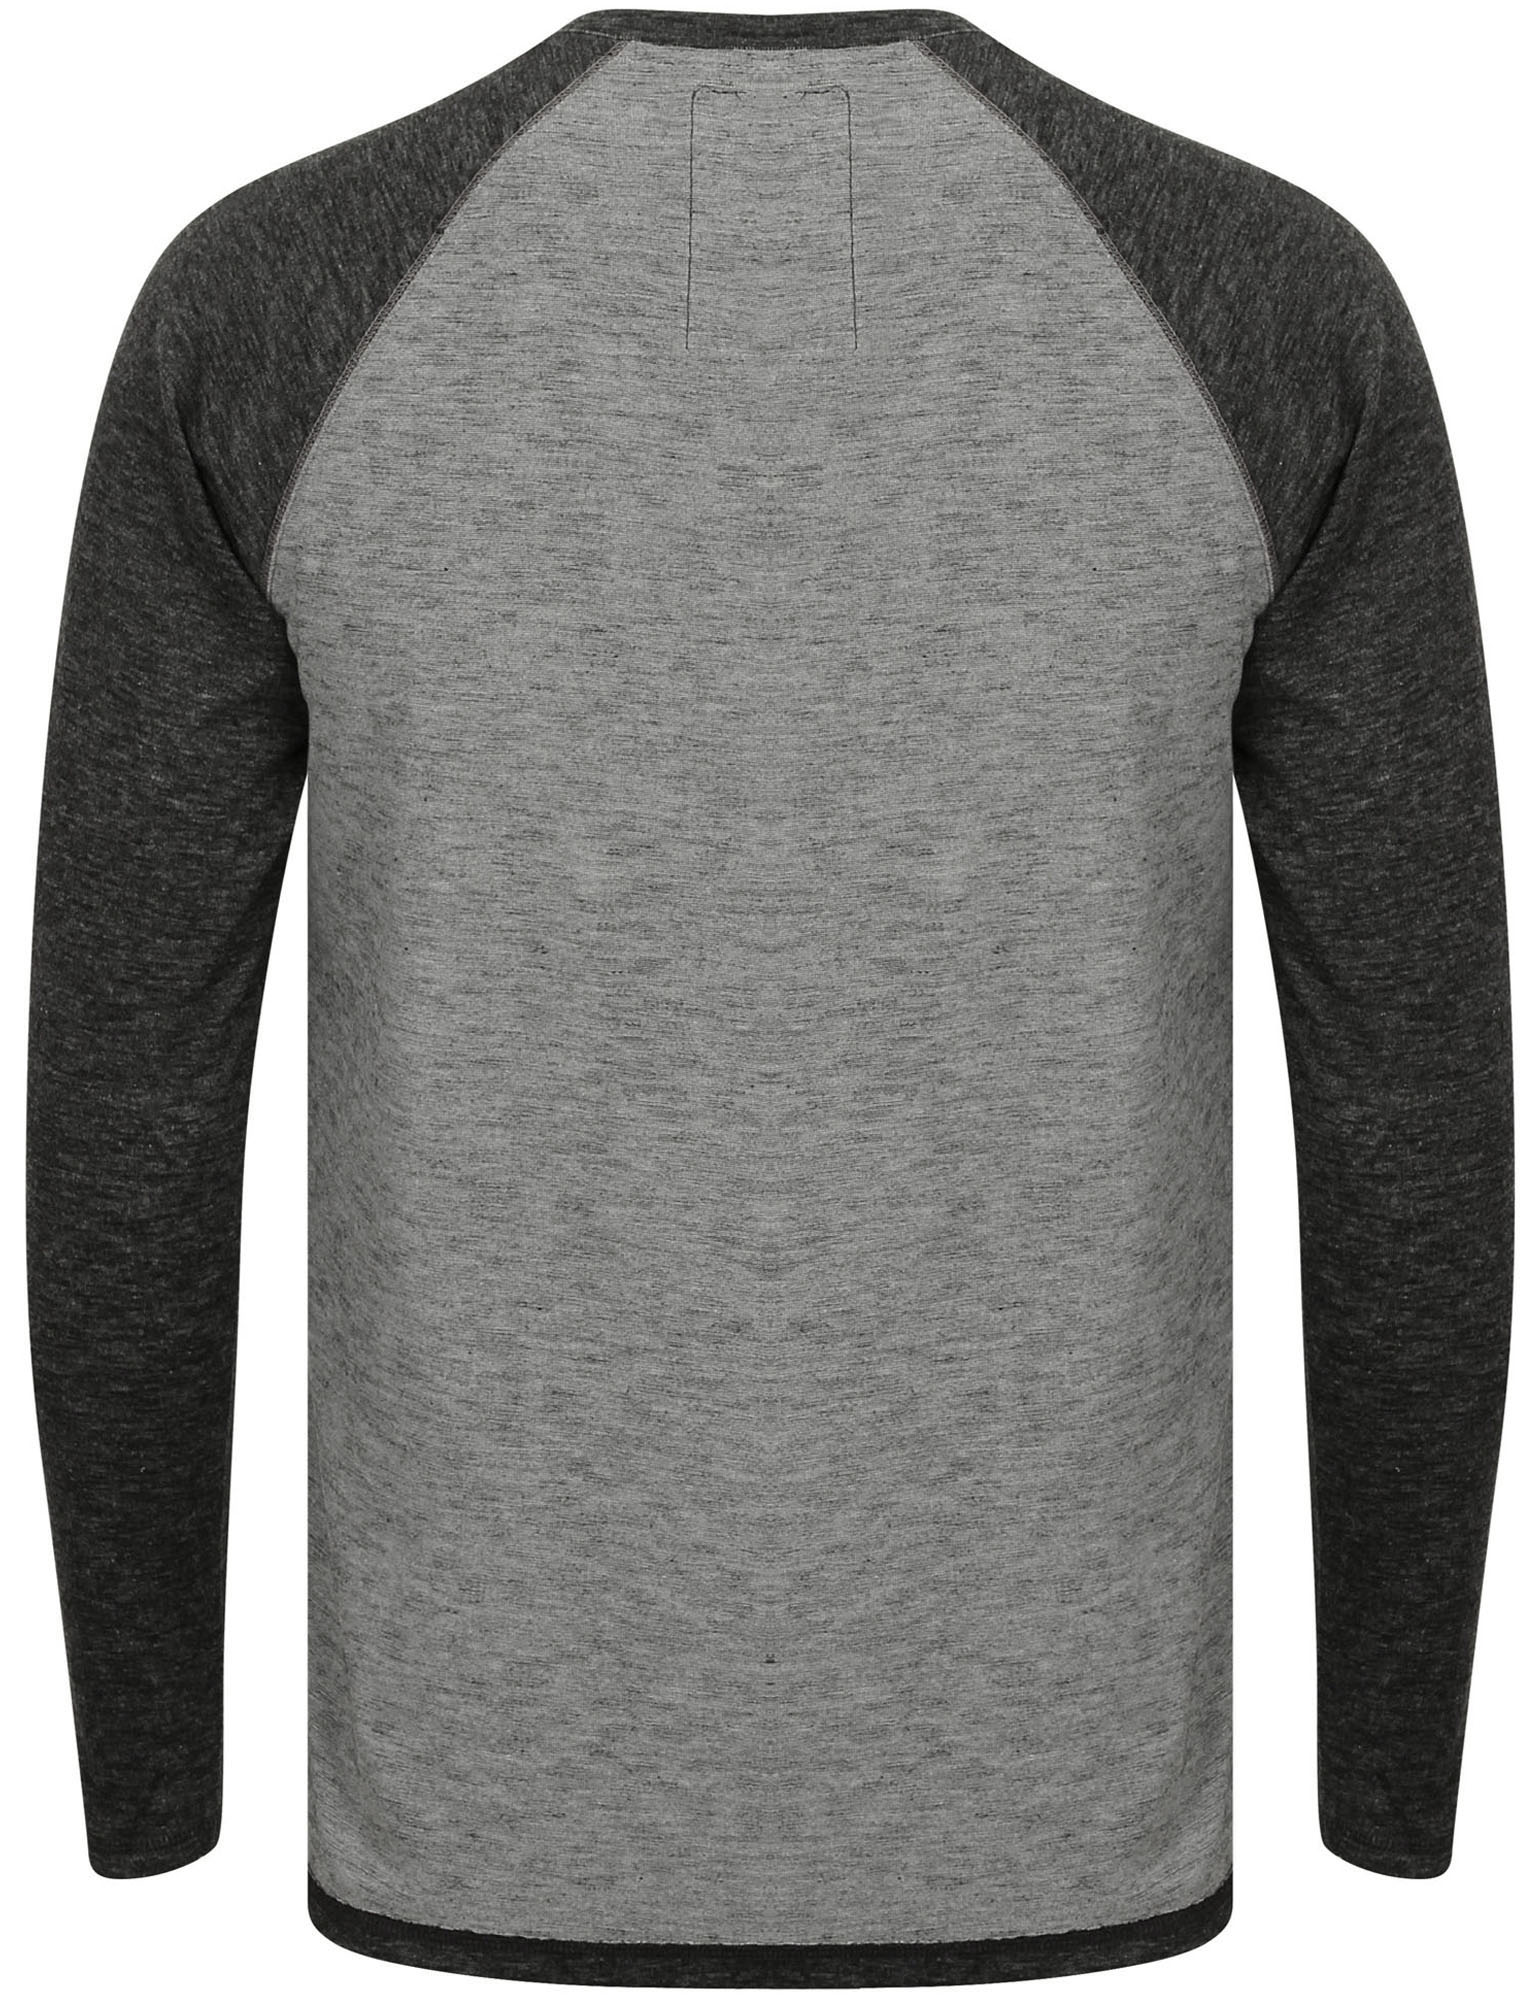 New-Mens-Tokyo-Laundry-Branded-Soft-Jersey-Long-Sleeve-Tops-T-Shirts-Size-S-XL thumbnail 13